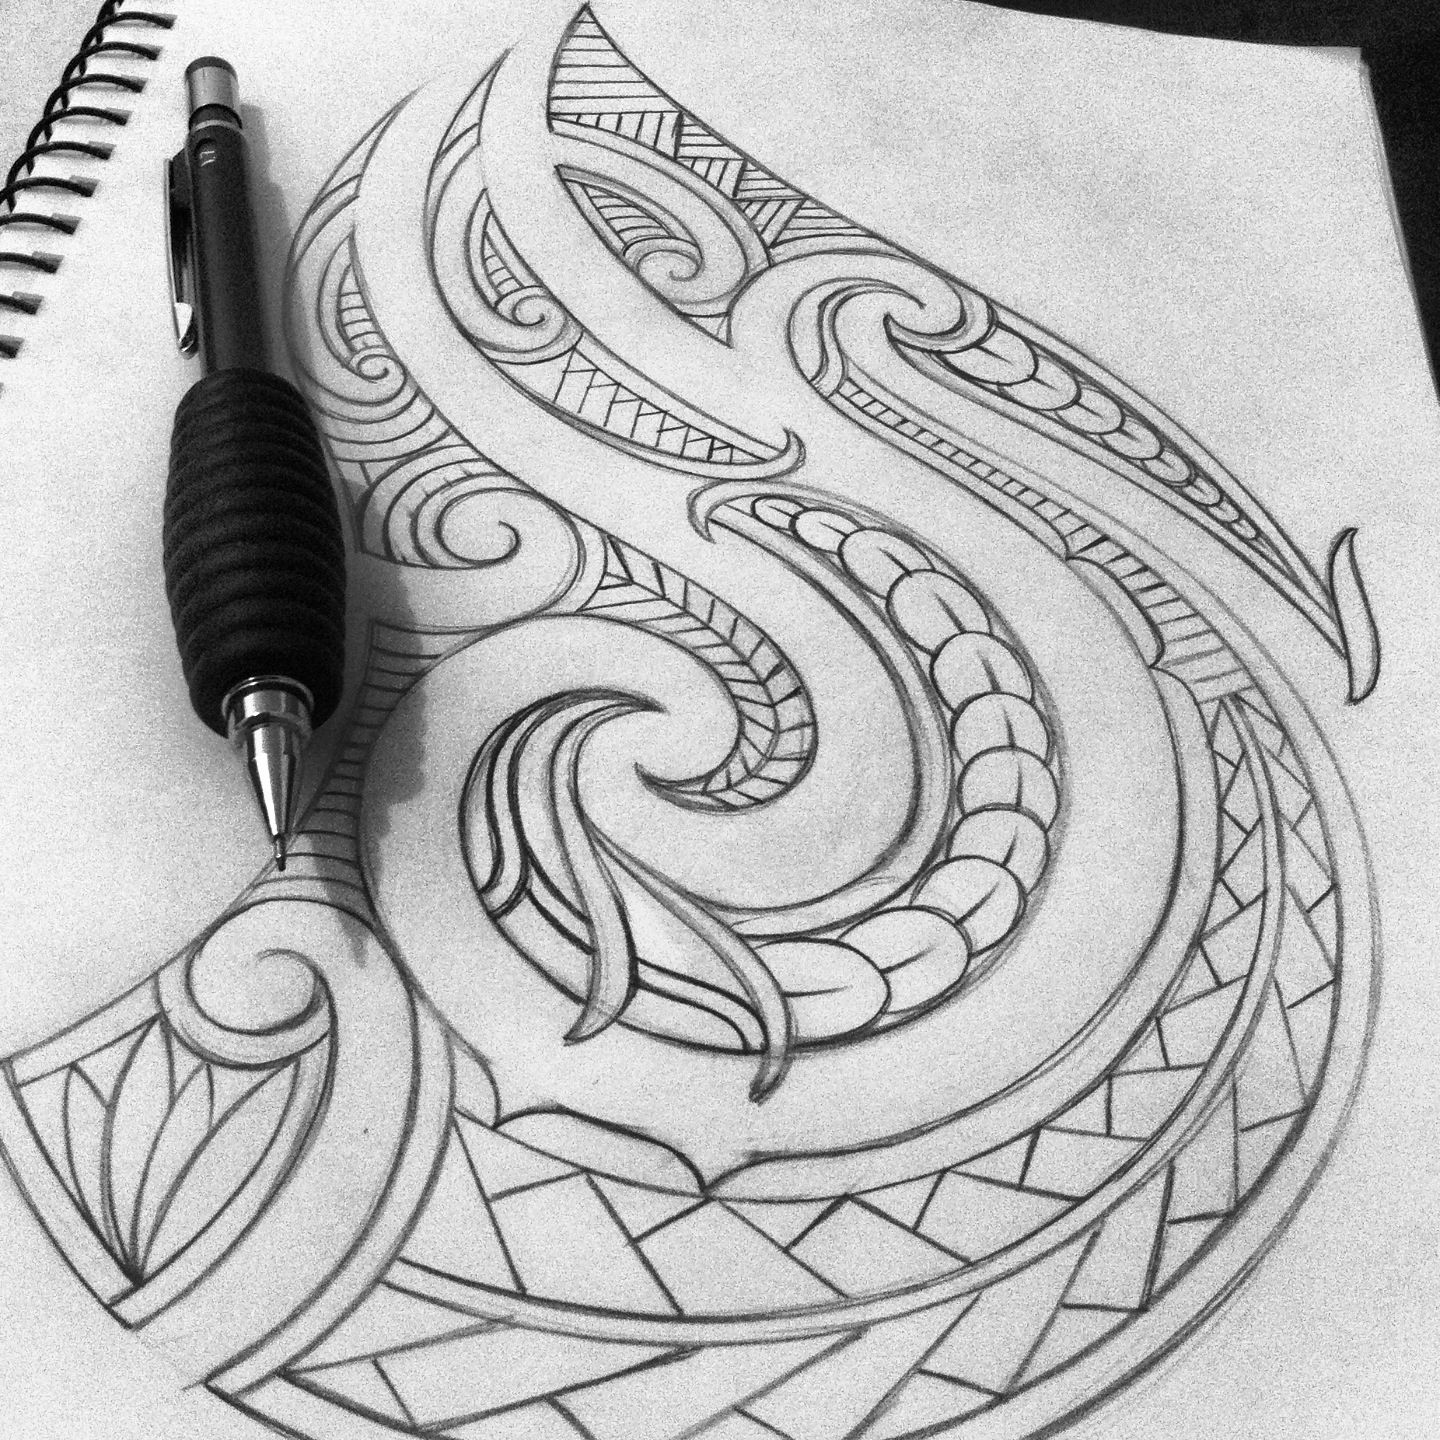 Maori Tattoo Design Polynesian Tattoo Maori Tattoo Designs Maori Tattoo Tattoo Designs